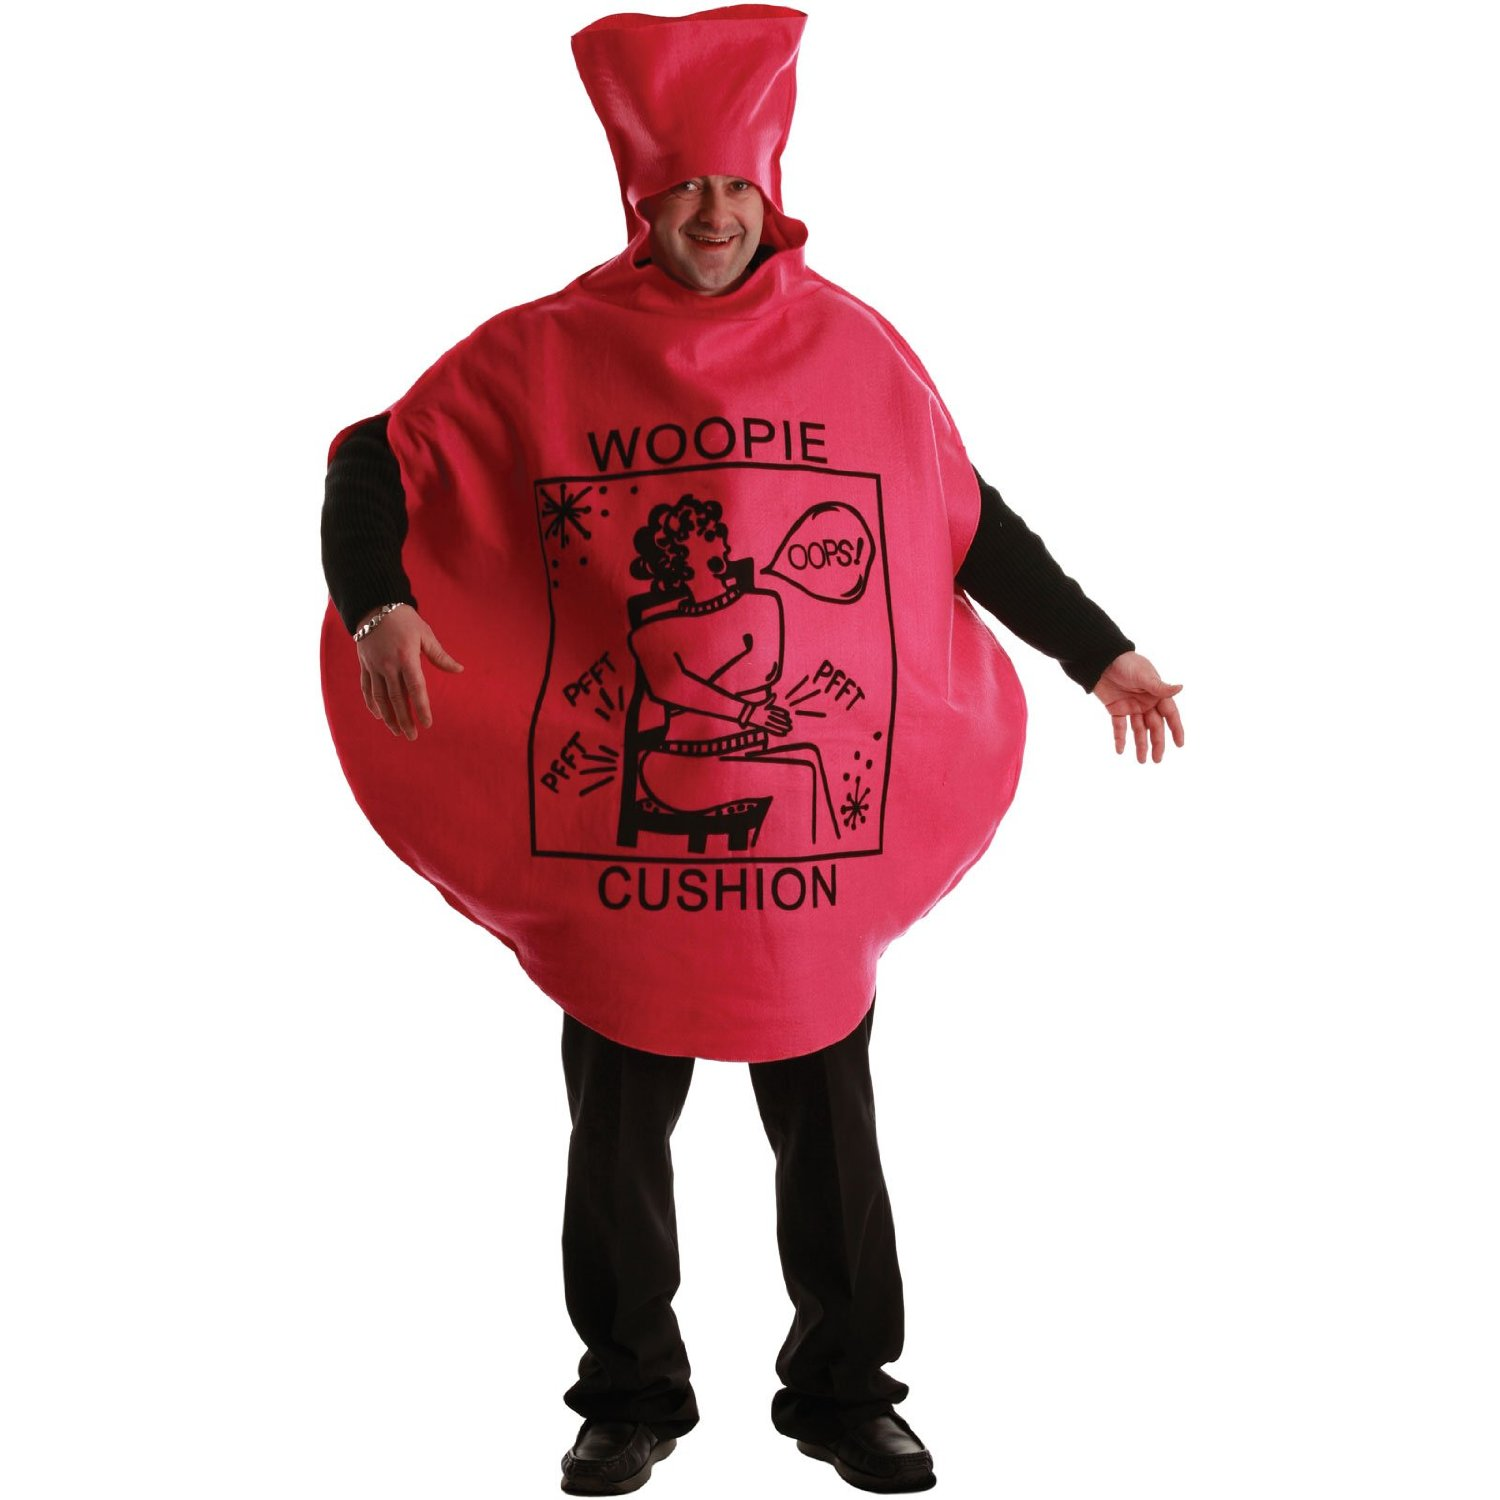 Adult Whoopie cushion costume fn8601